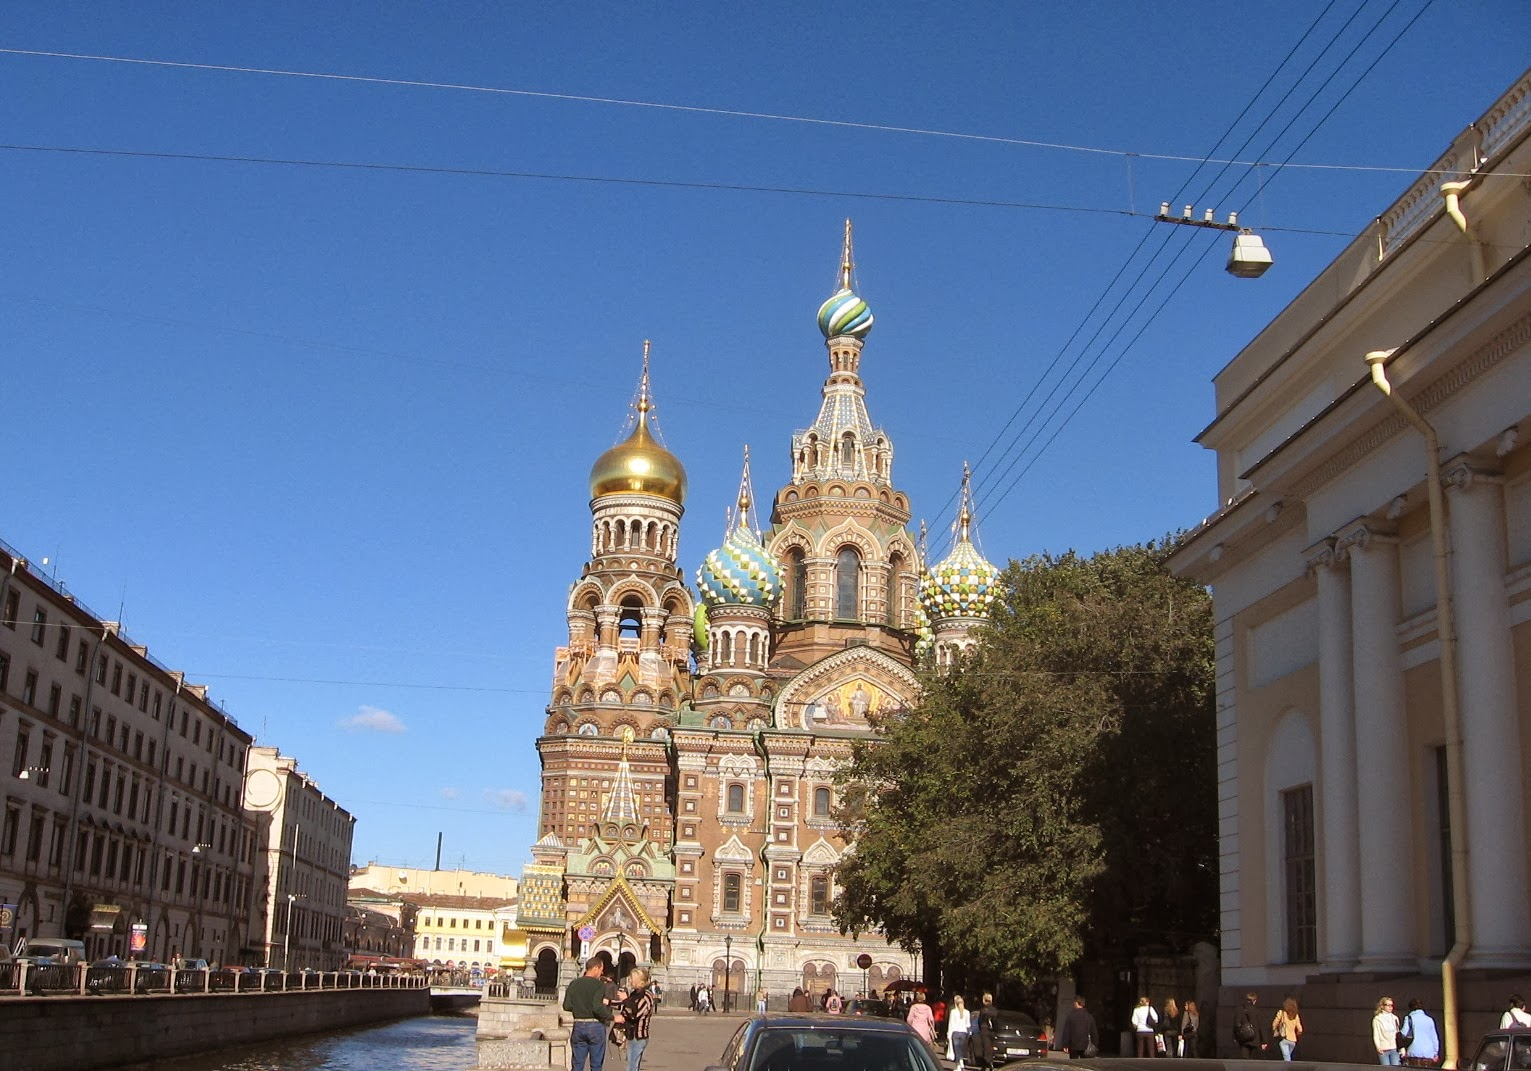 http://fashionsbit.blogspot.com.tr/2014/01/magnificent-city-stpetersburg-vol1.html